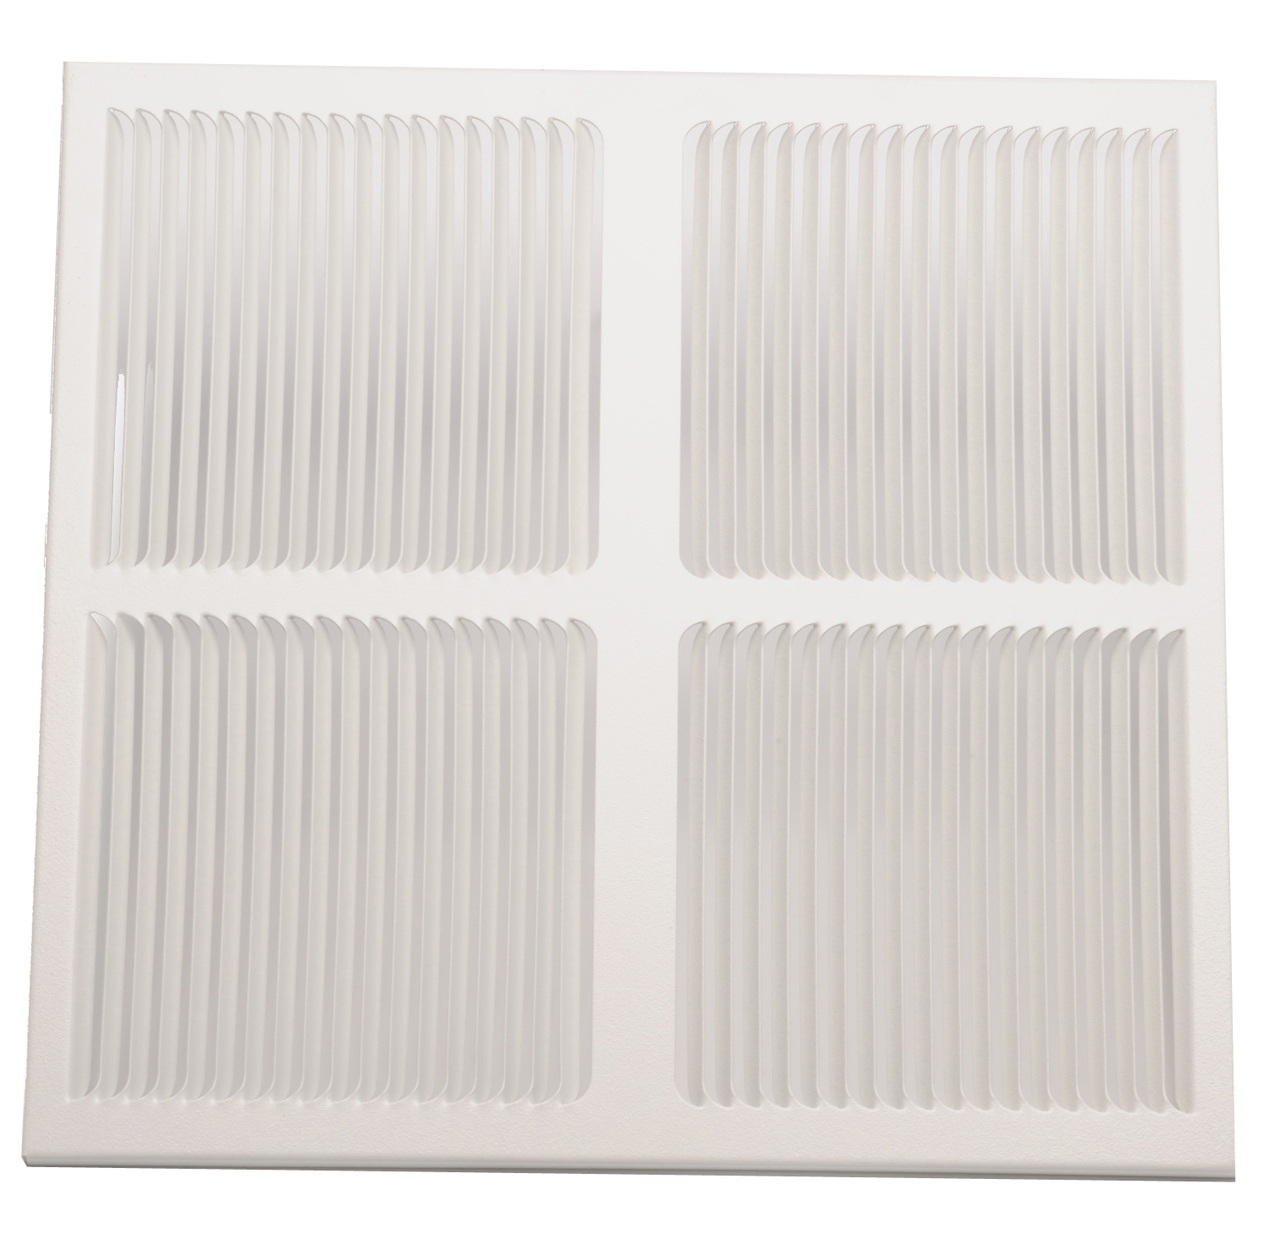 Williams Furnace Company 6703 Two-Way Diffusing Grille